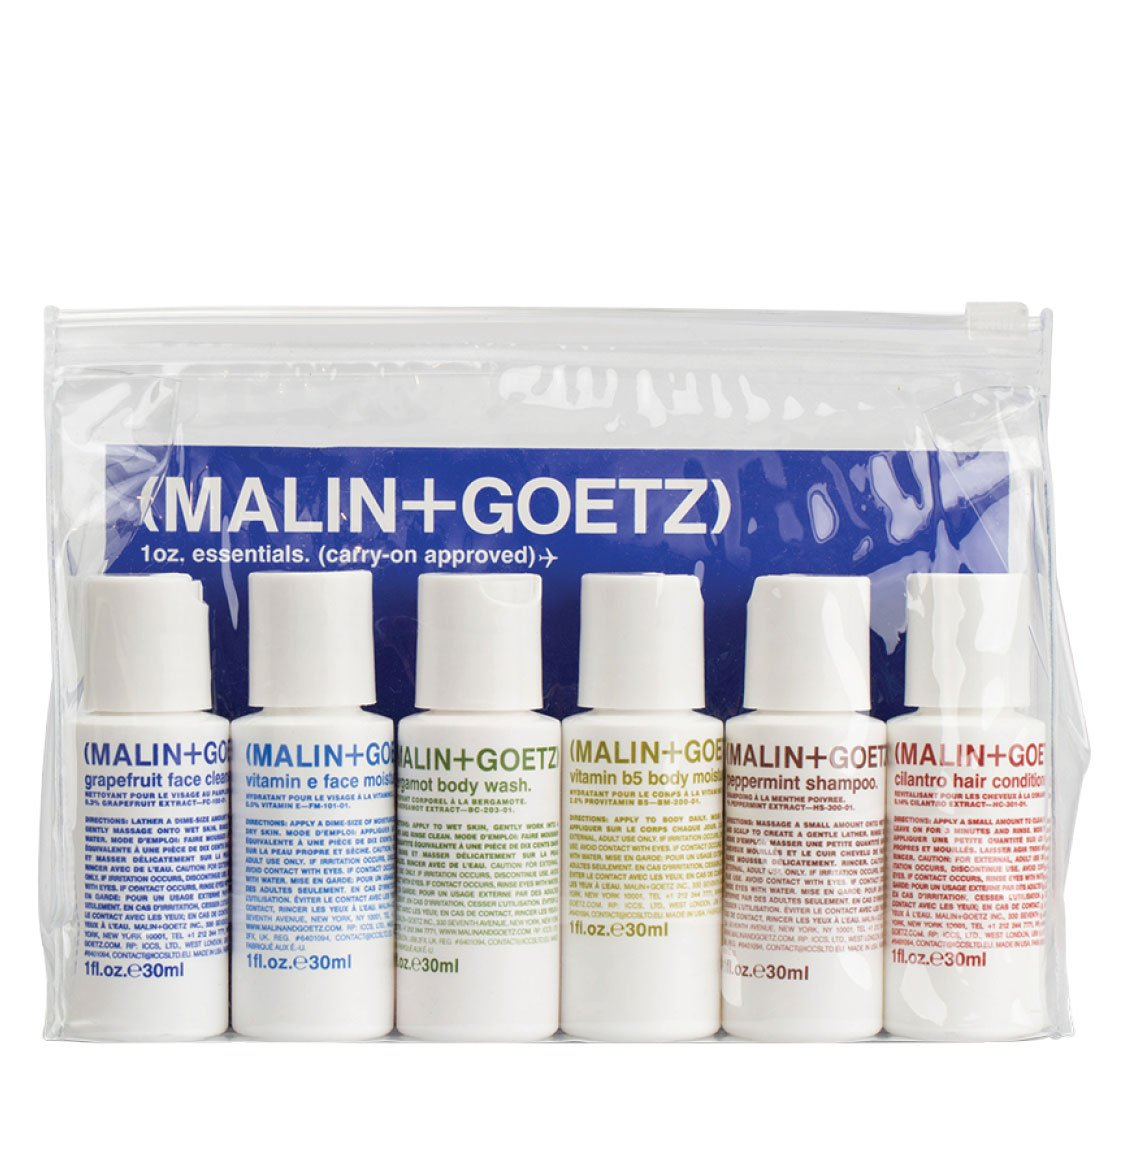 Malin and Goetz Travel Kit | Face Cleanser 29ml | Face Moisturizer 29ml | Body Wash 29ml | Body Moisturizer 29ml | Shampoo 29ml | Conditioner 29ml